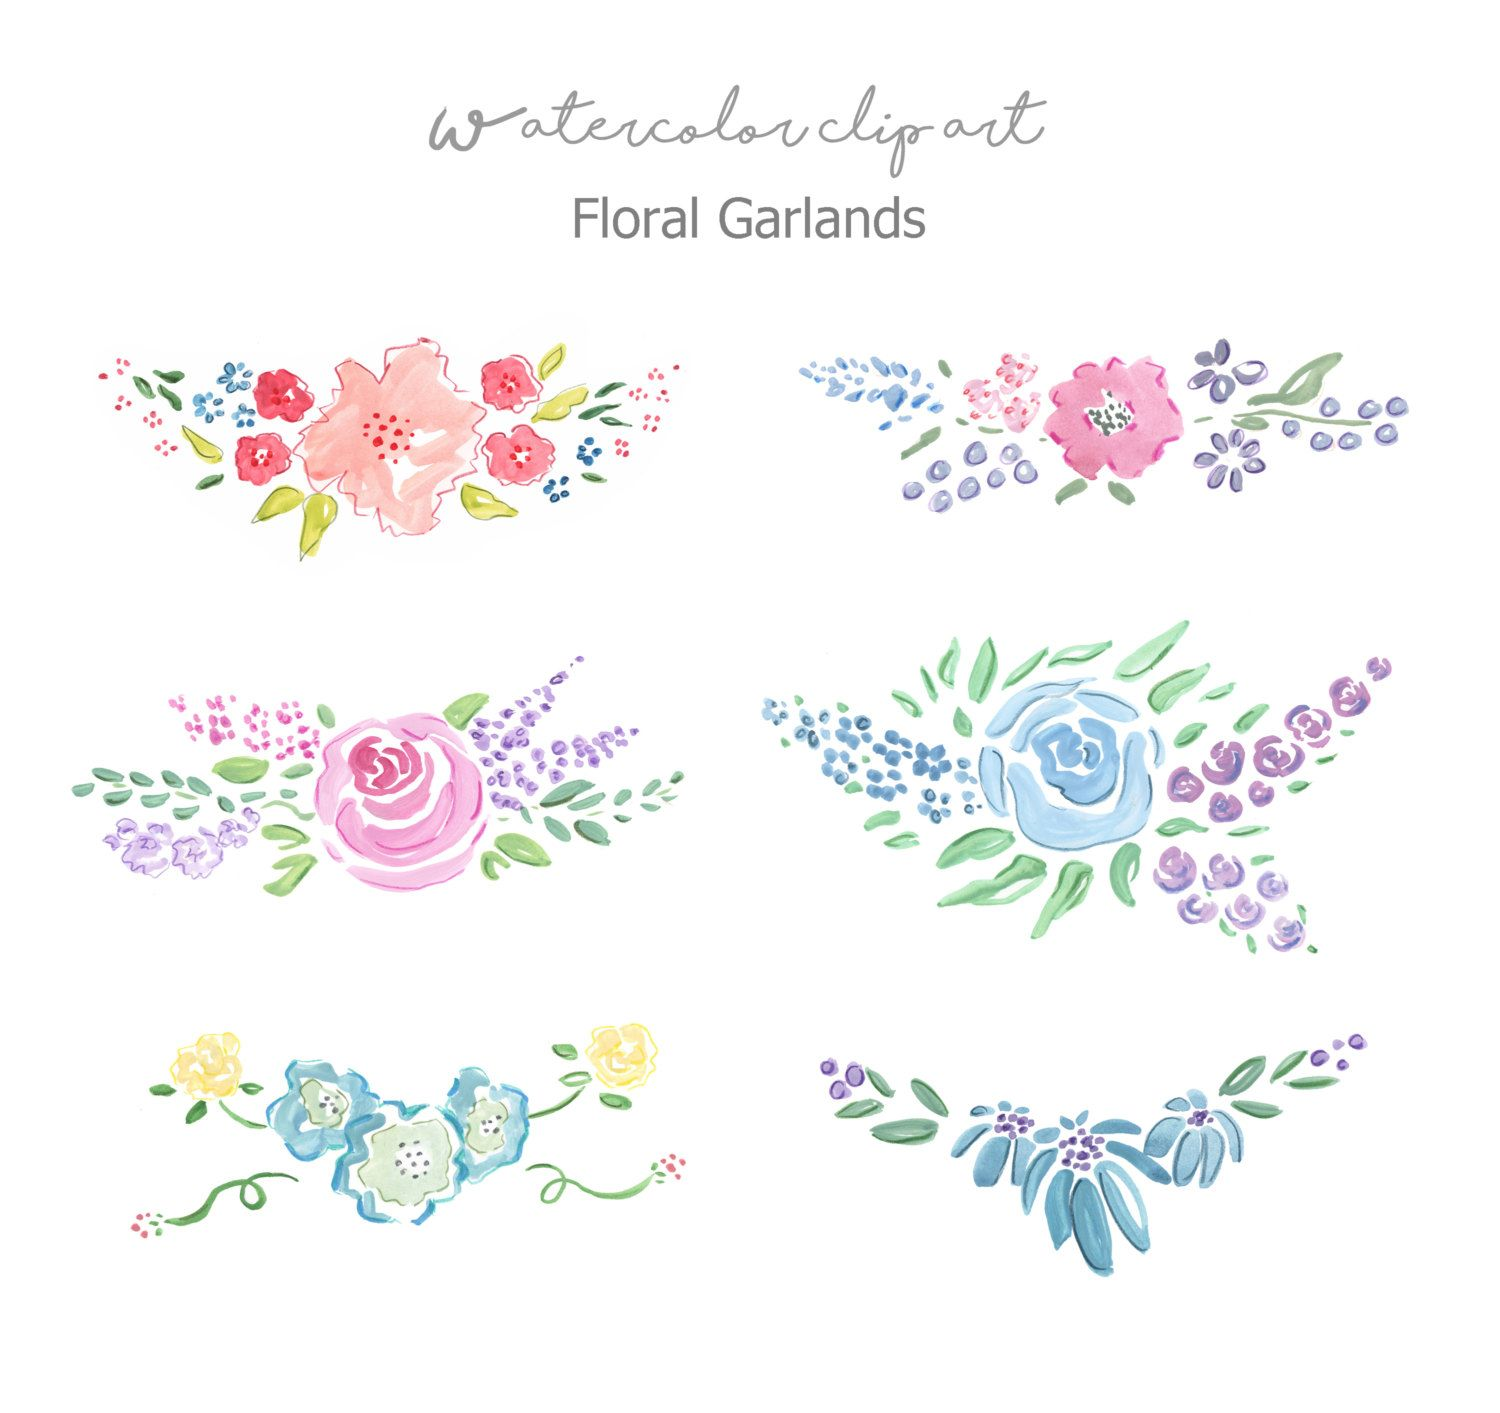 Floral Garlands Clip Art Watercolor Floral Banners Watercolor